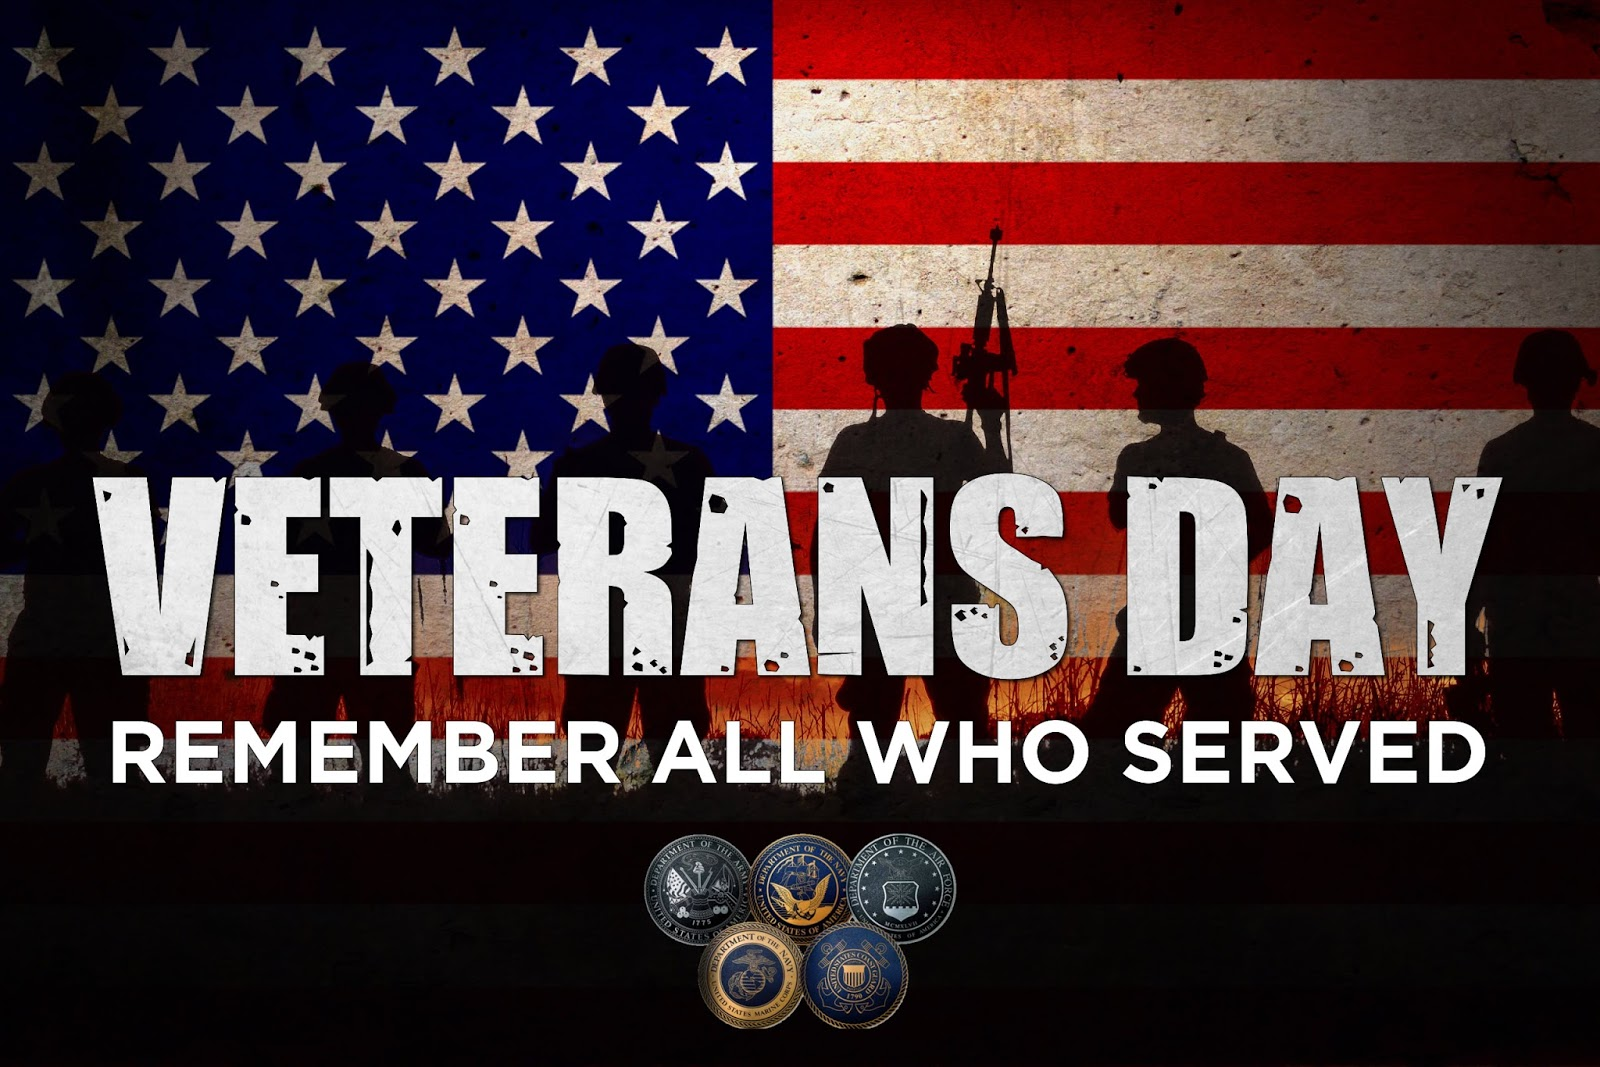 veterans-day-2.jpg